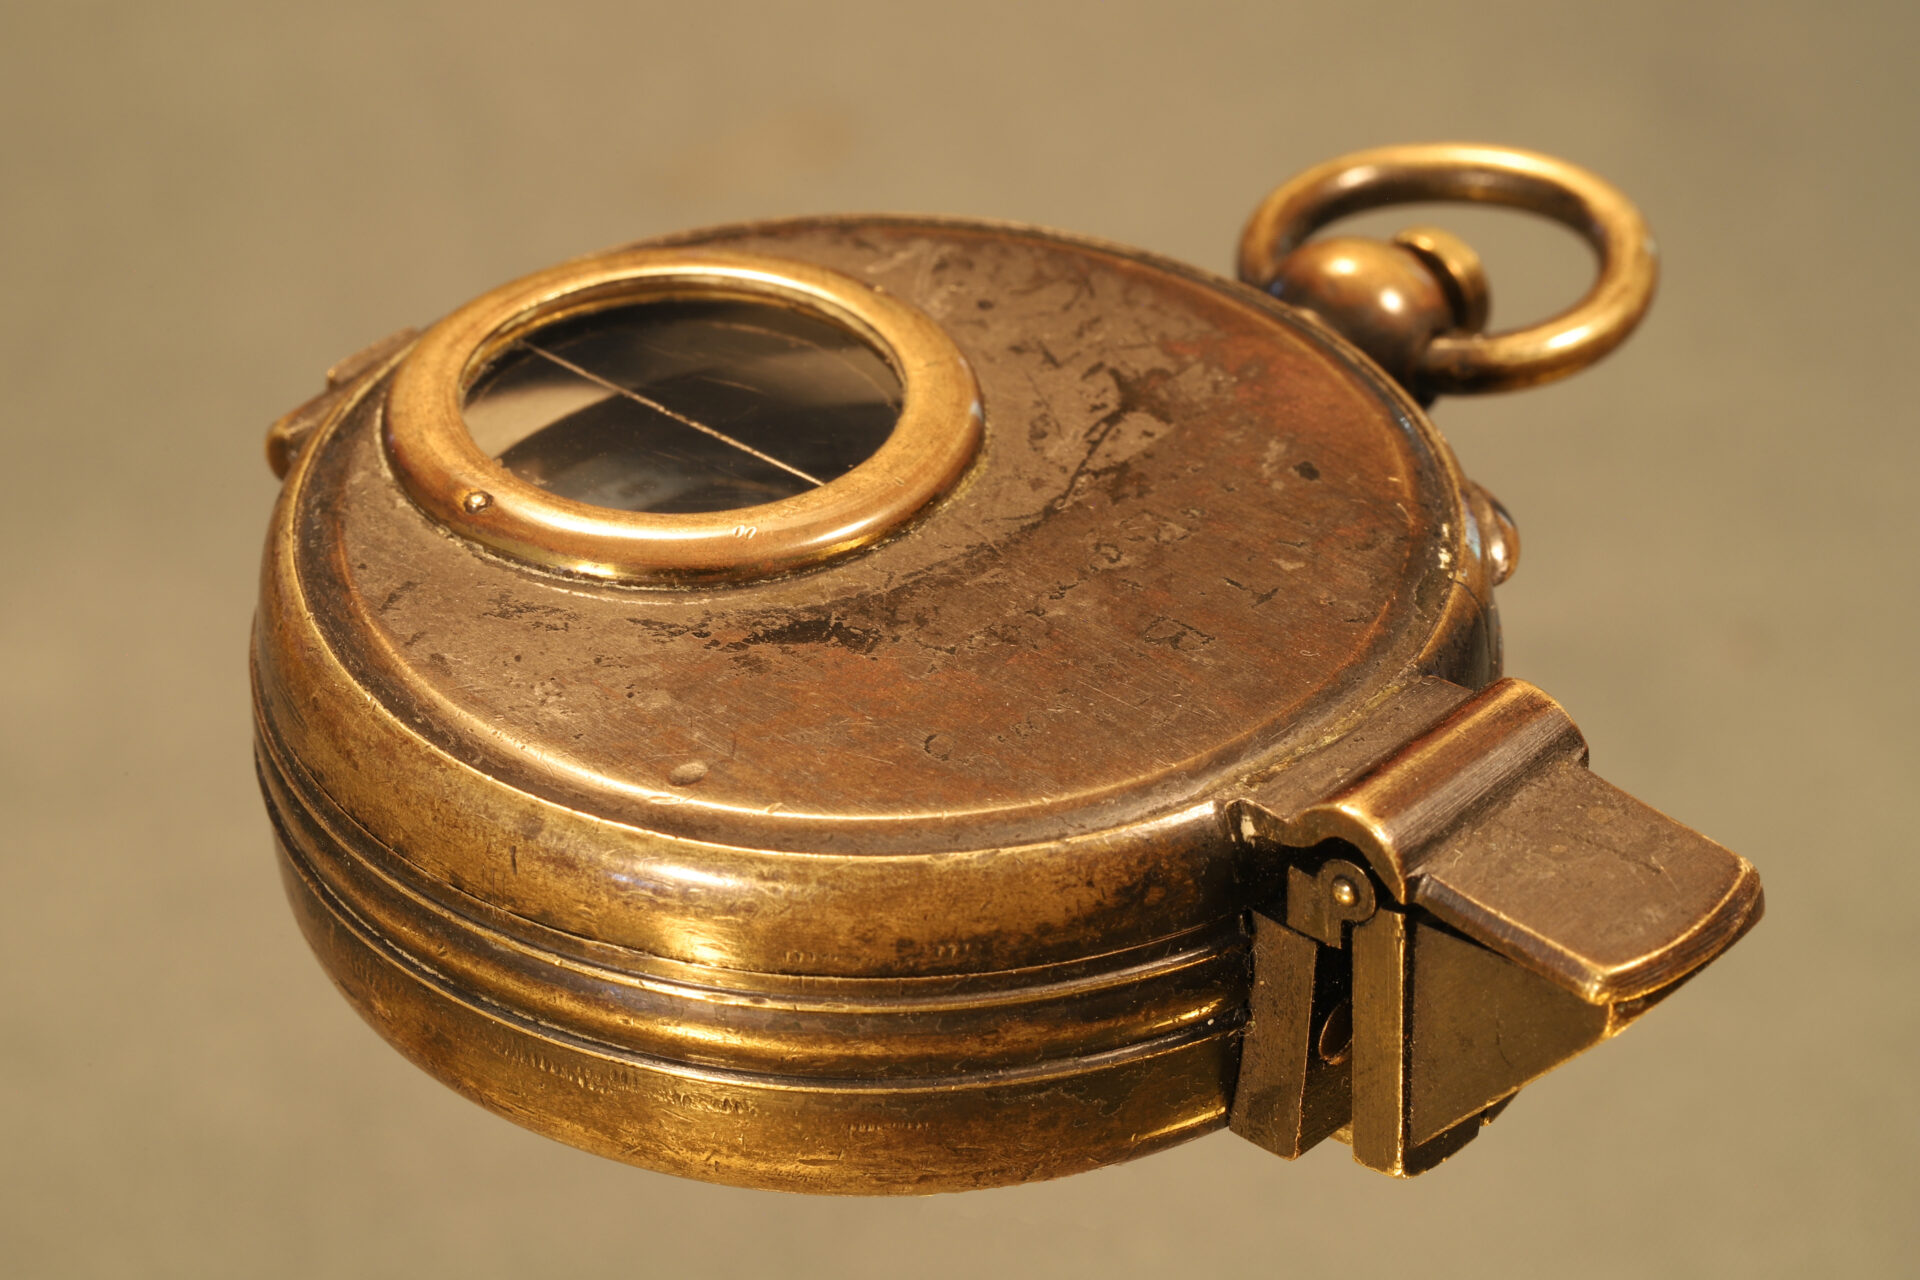 Image of closed Negretti & Zambra Prismatic Compass c1895 taken from lefthand side